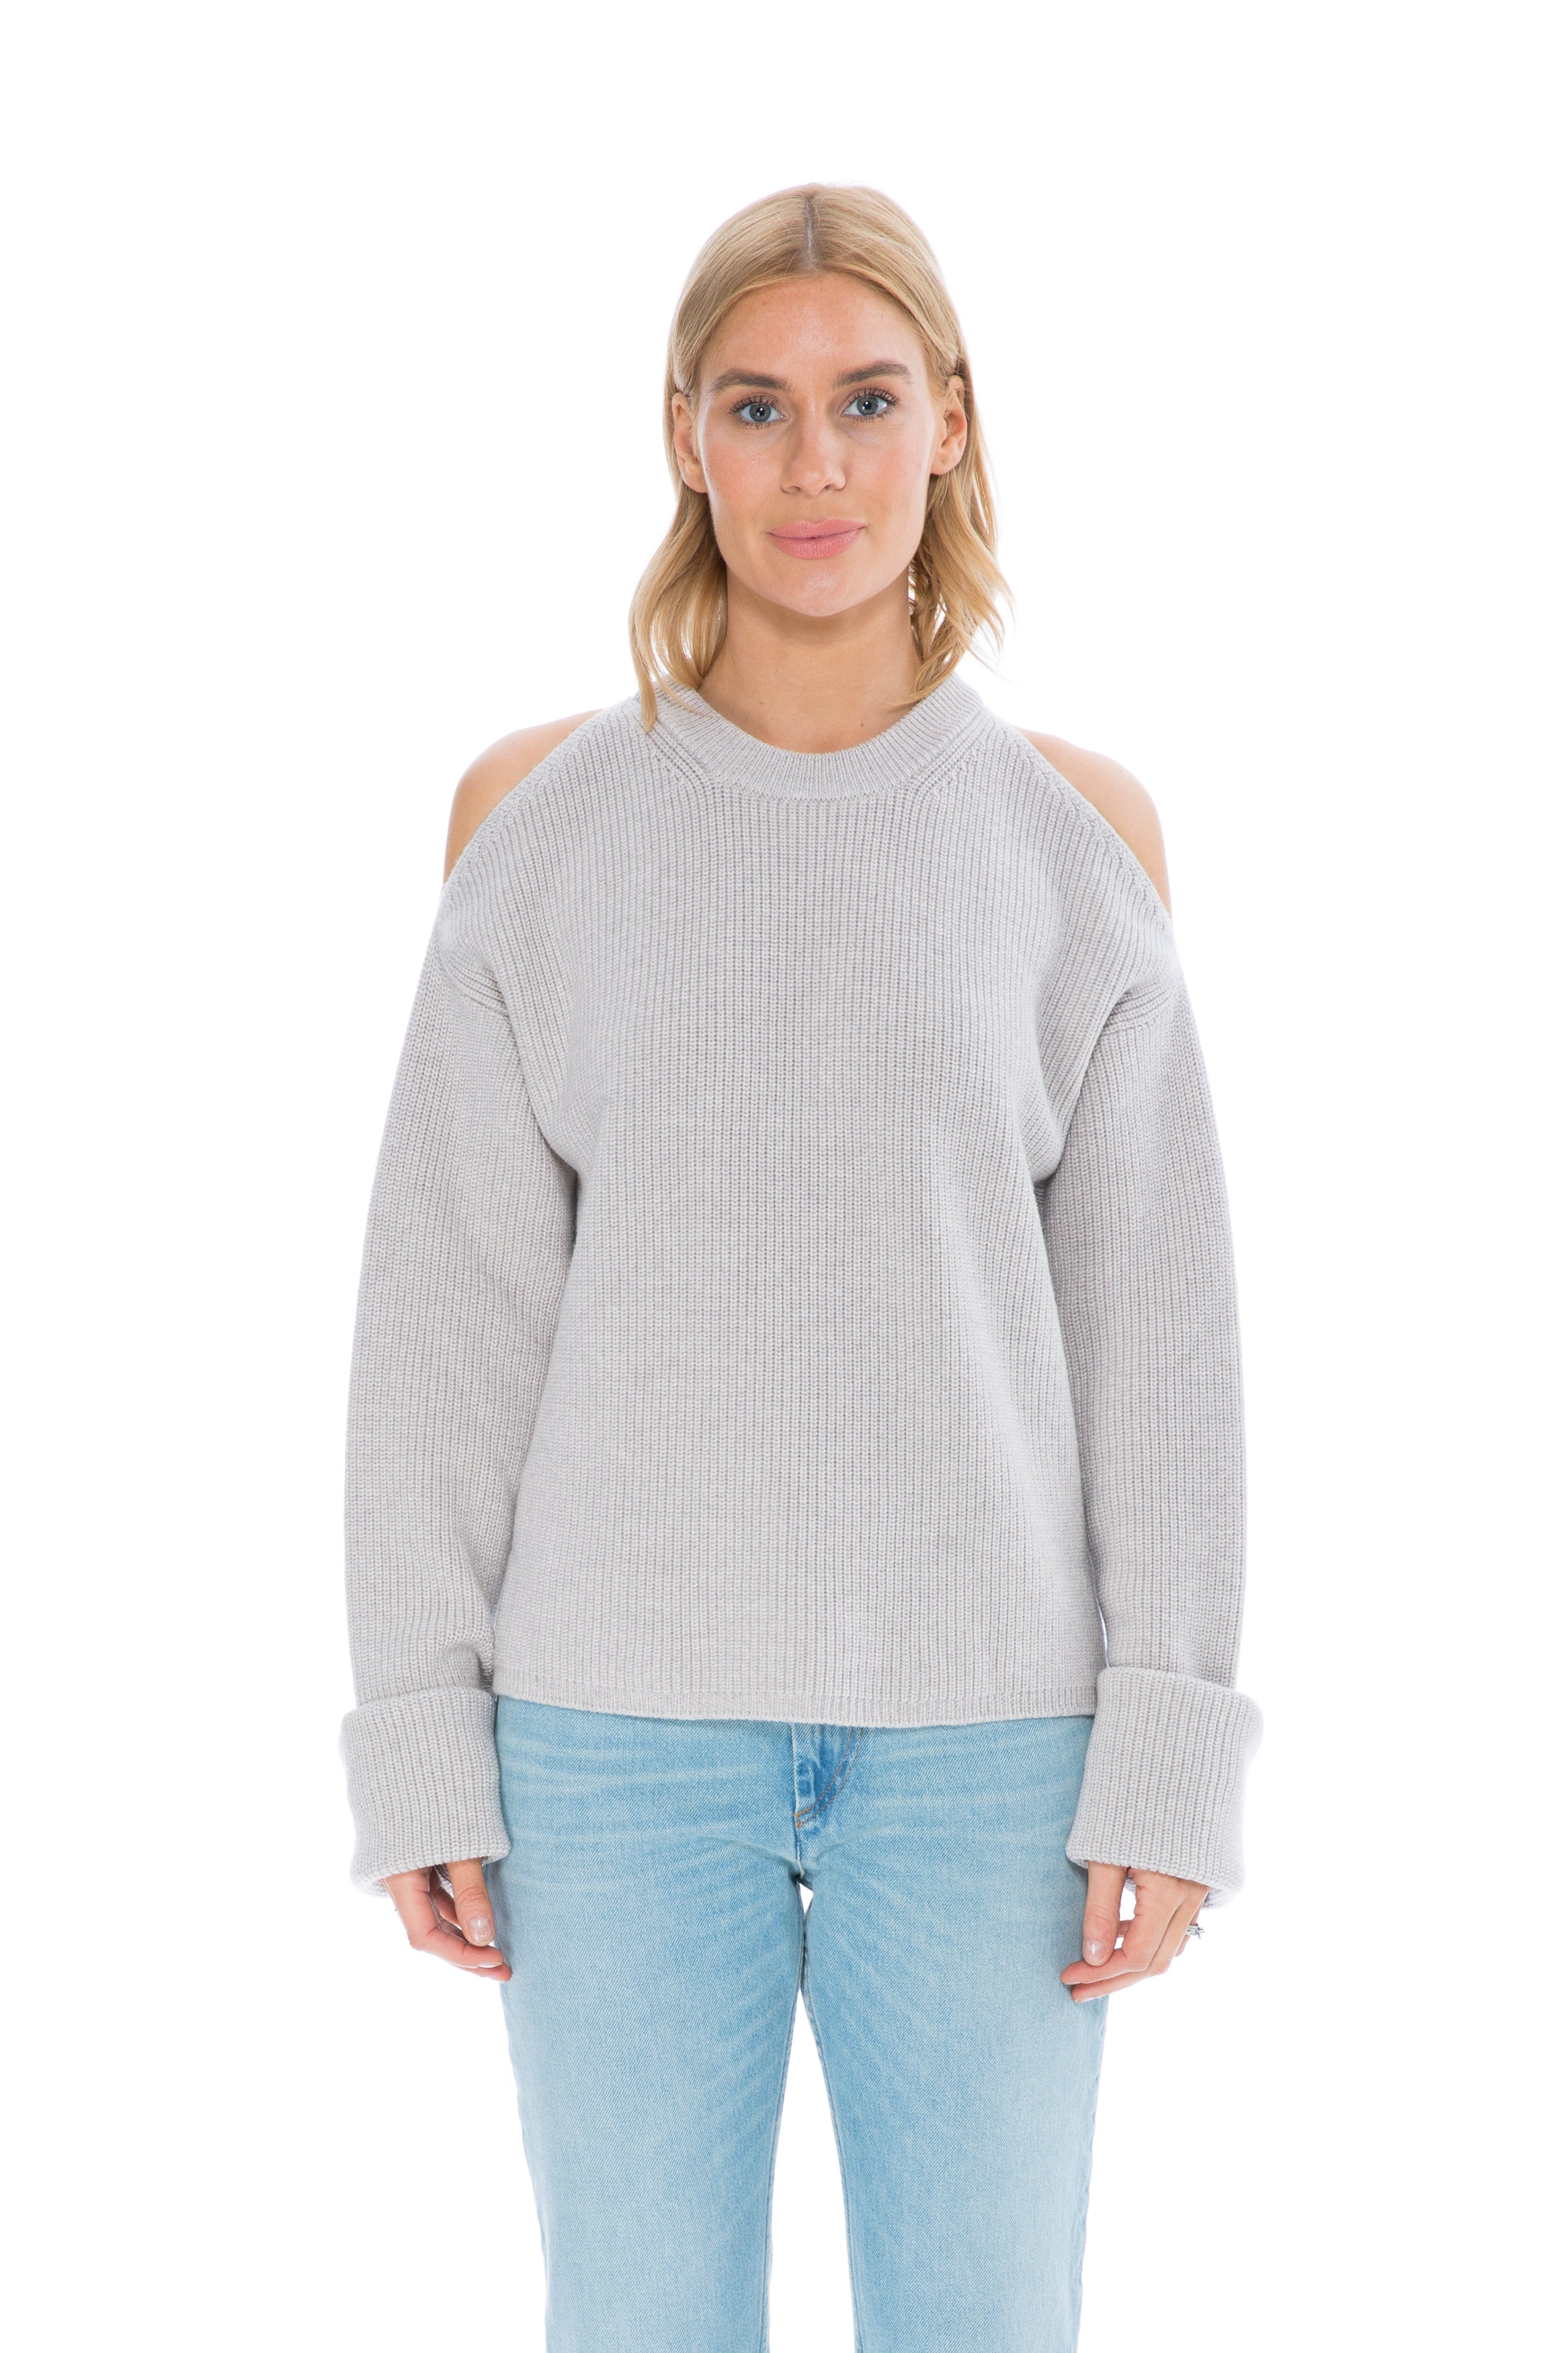 CUT OUT SHOULDER KNIT BONE